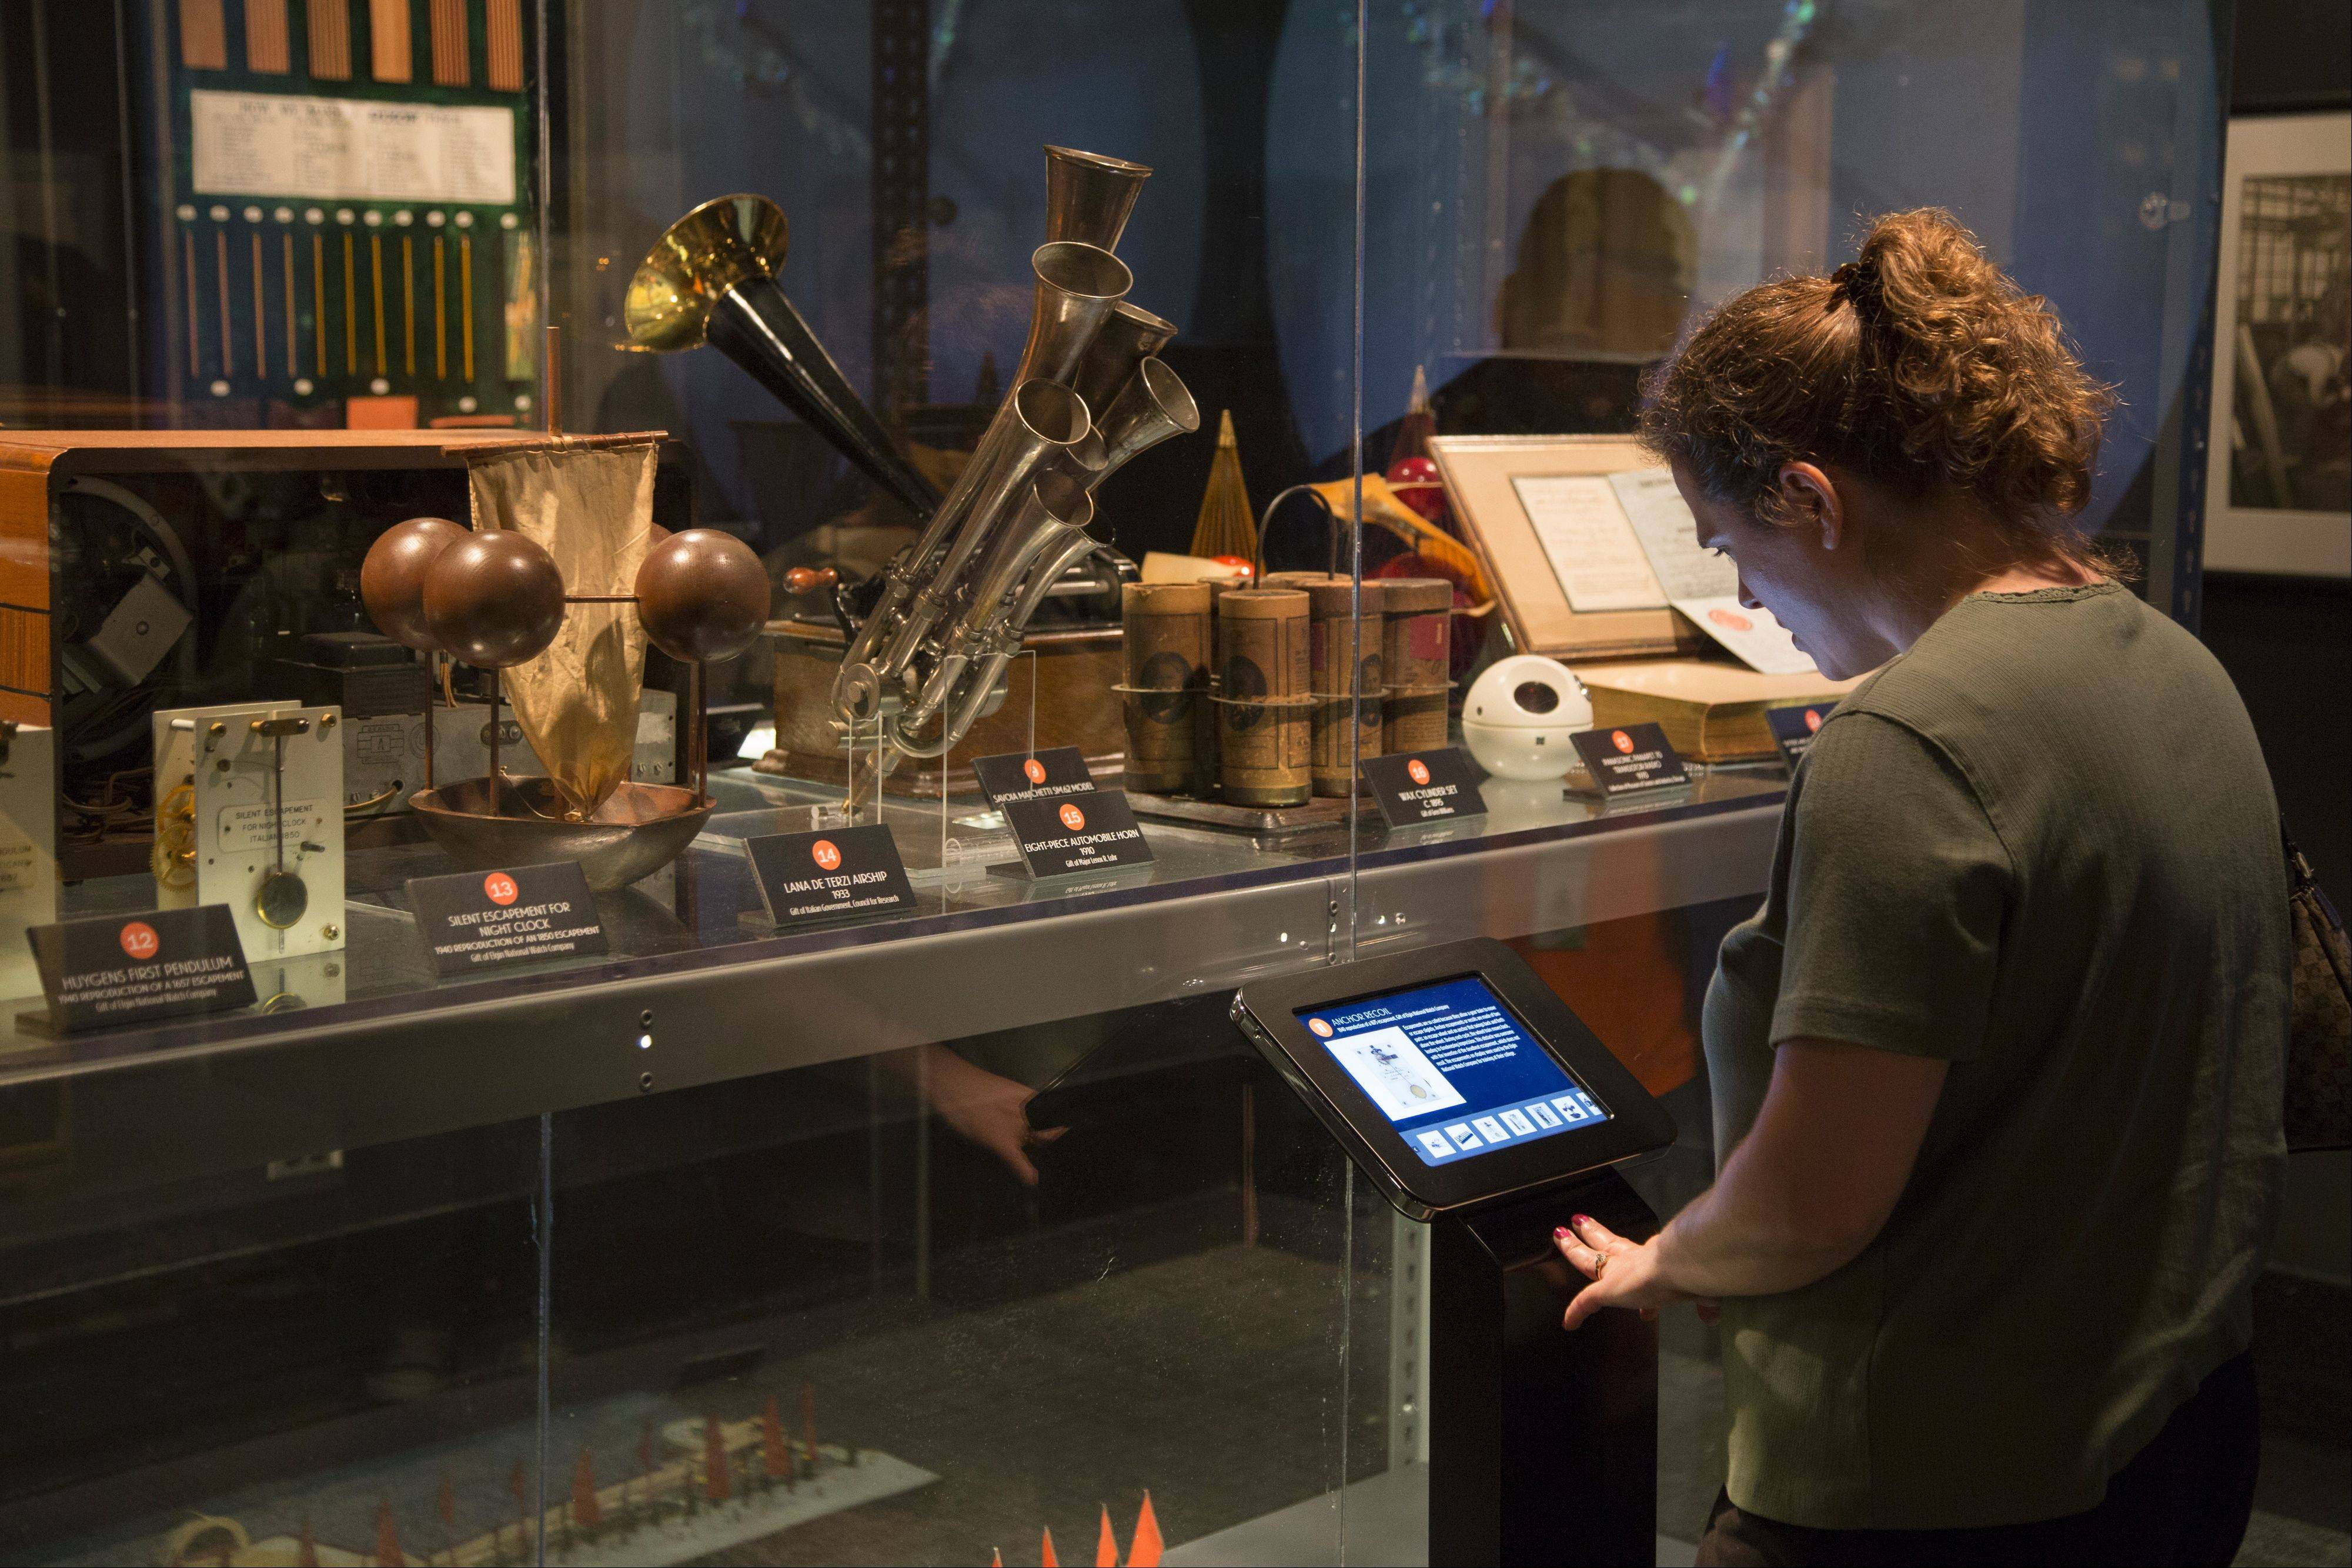 Kiosks with iPads throughout the exhibit provide all kinds of information for the 80 artifacts included.